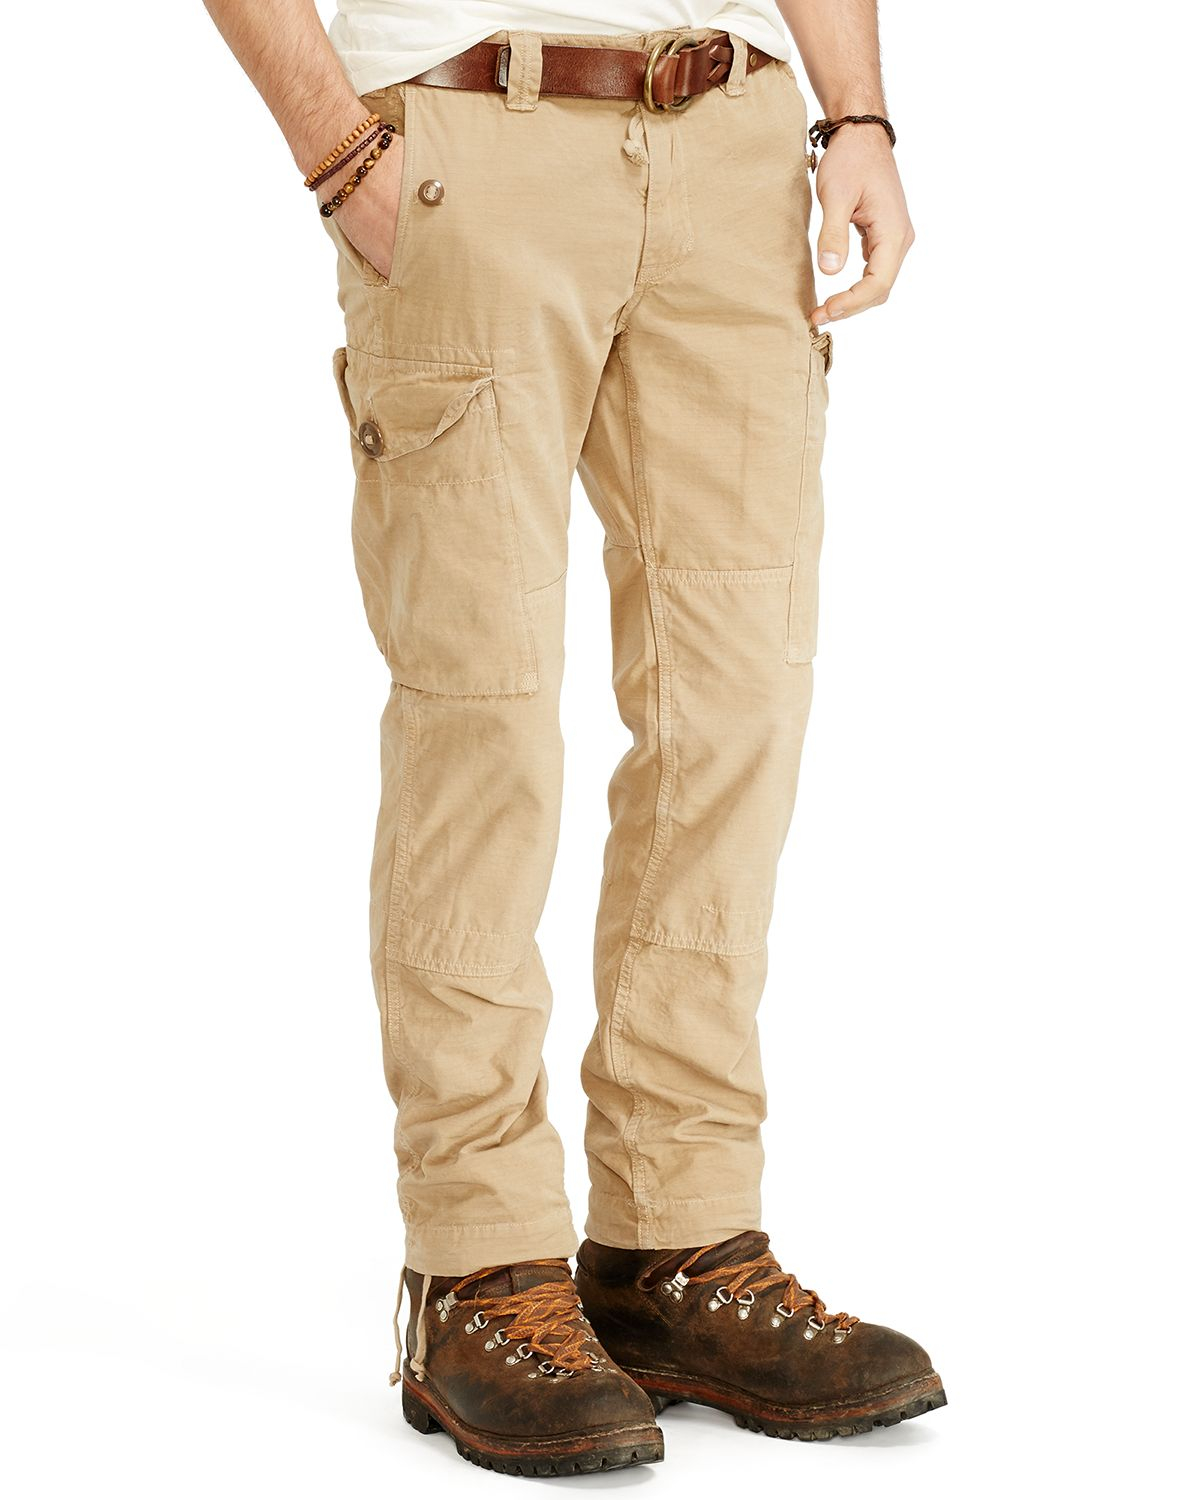 Ralph lauren Polo Montauk Ripstop Cargo Pants - Straight Fit in ...